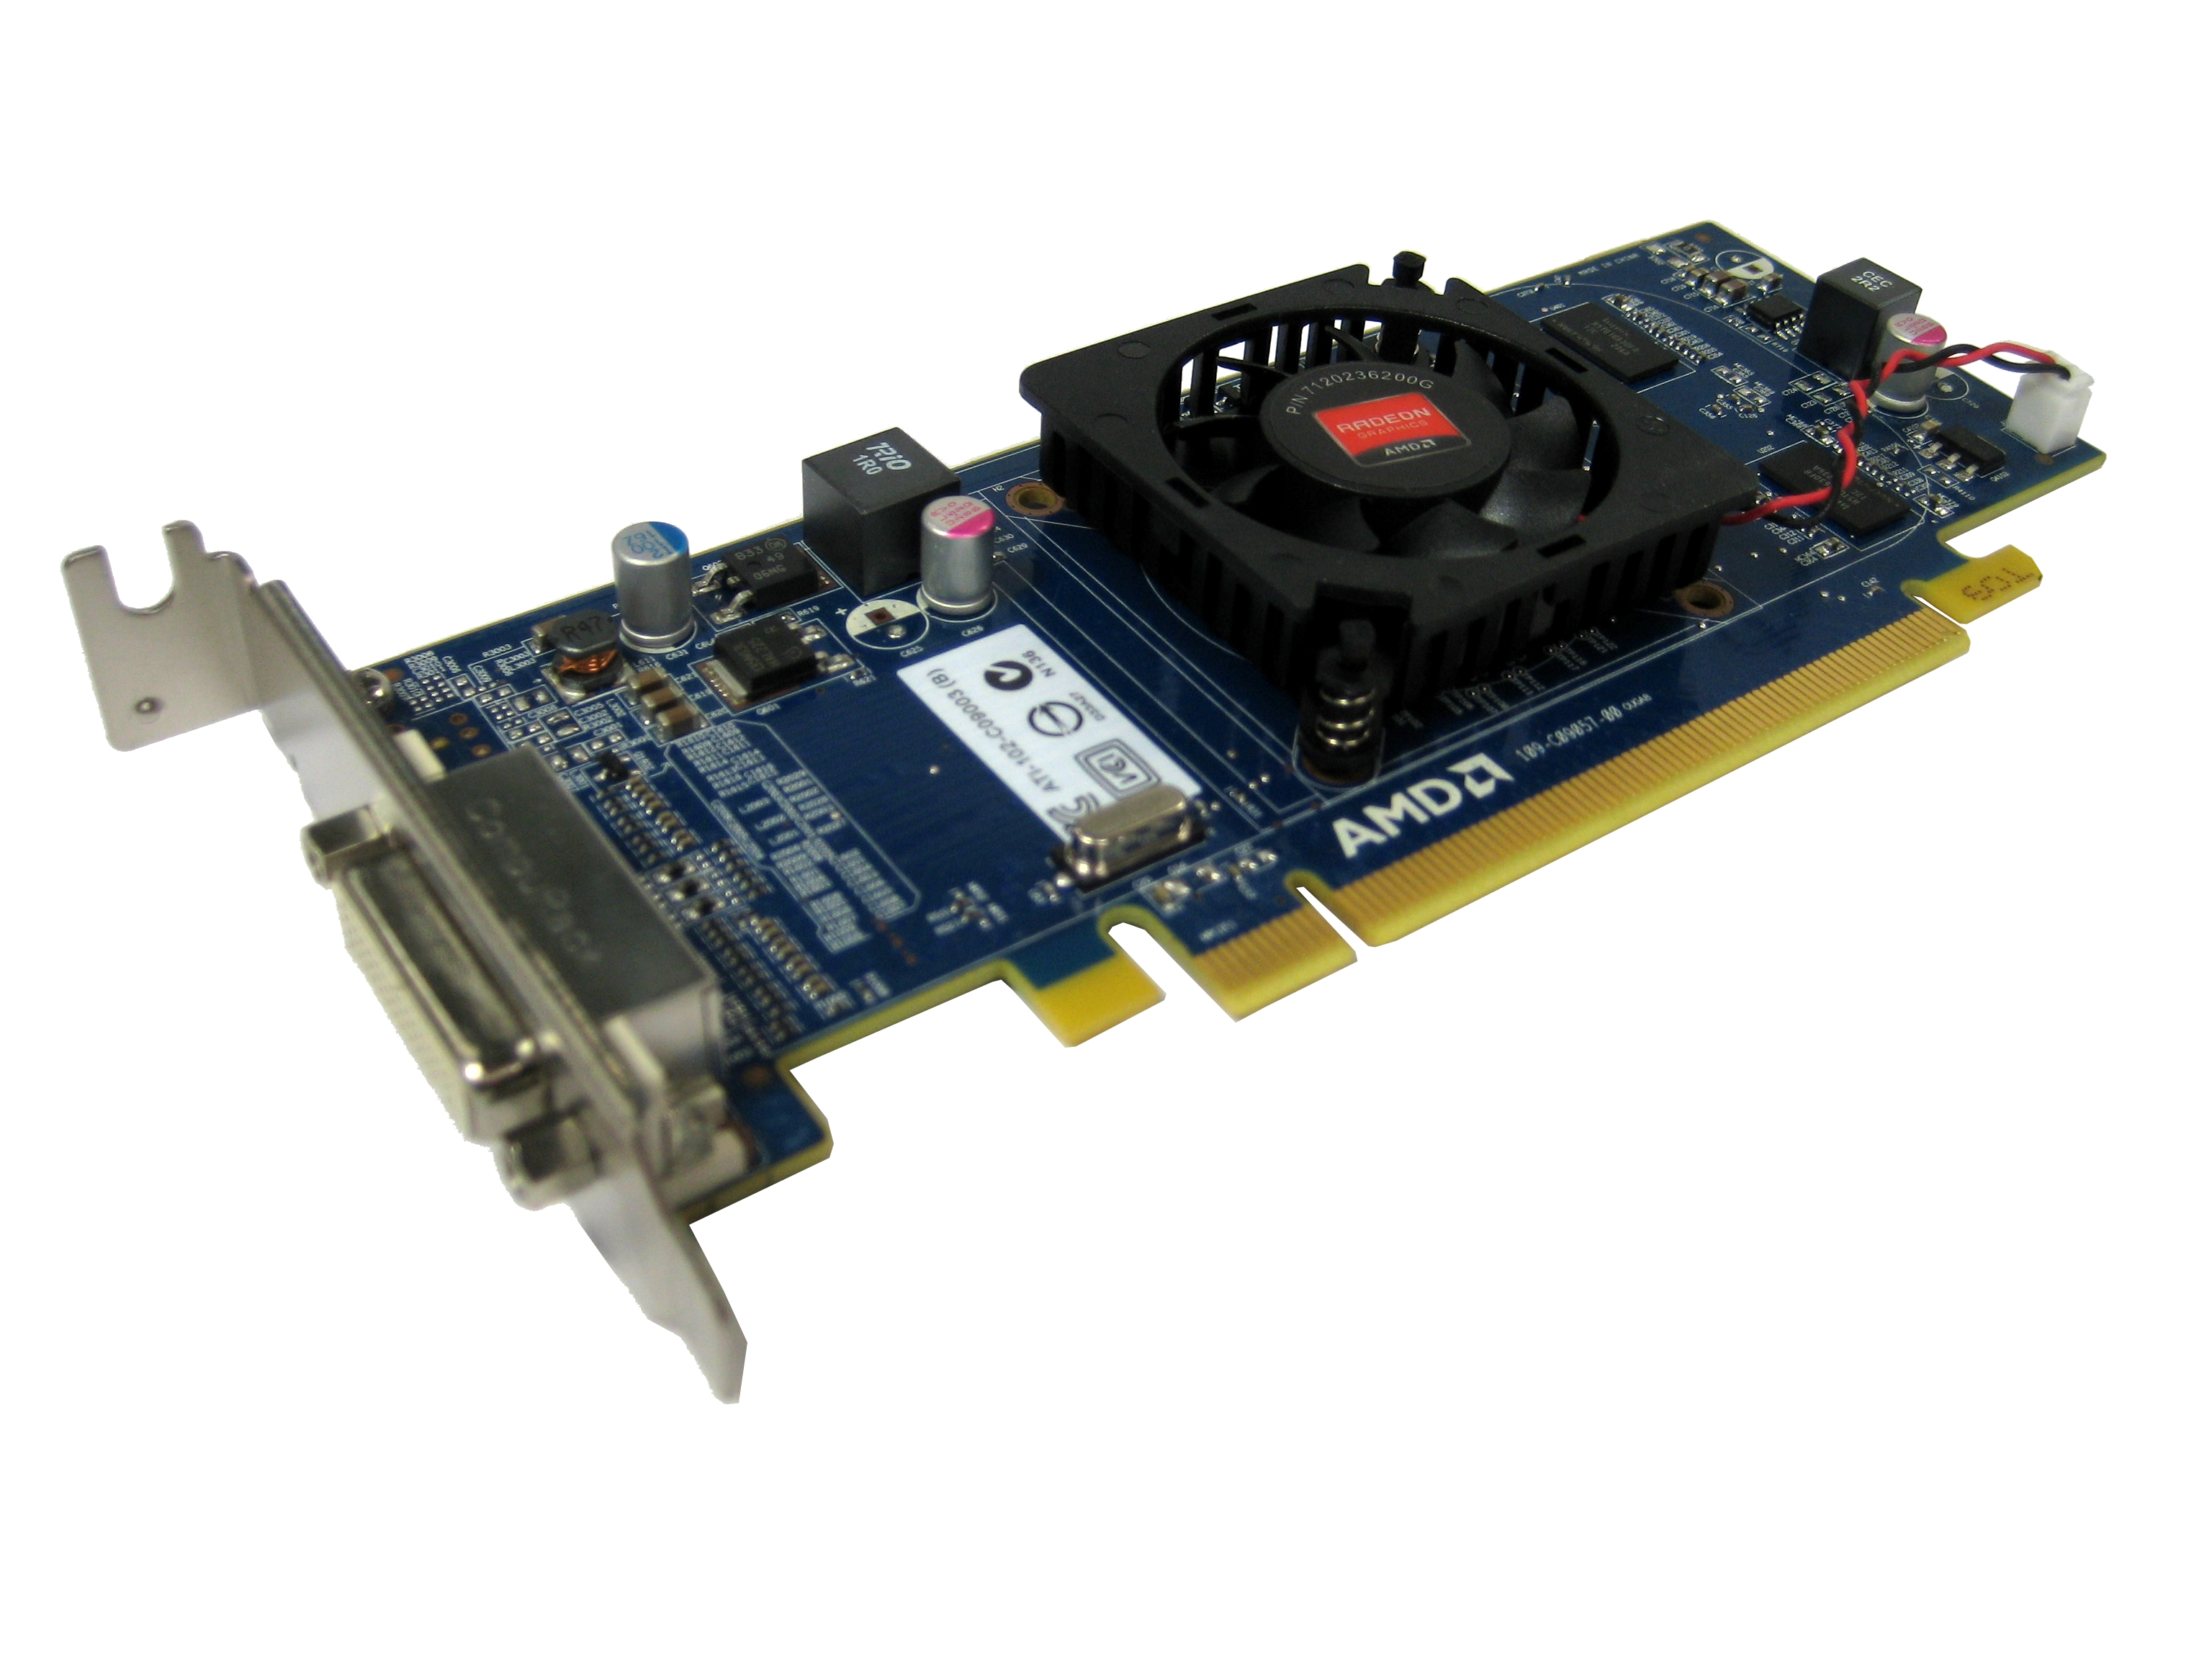 Dell HFKYC AMD Radeon HD 5450 512MB DMS-59 Low Profile Graphics Card